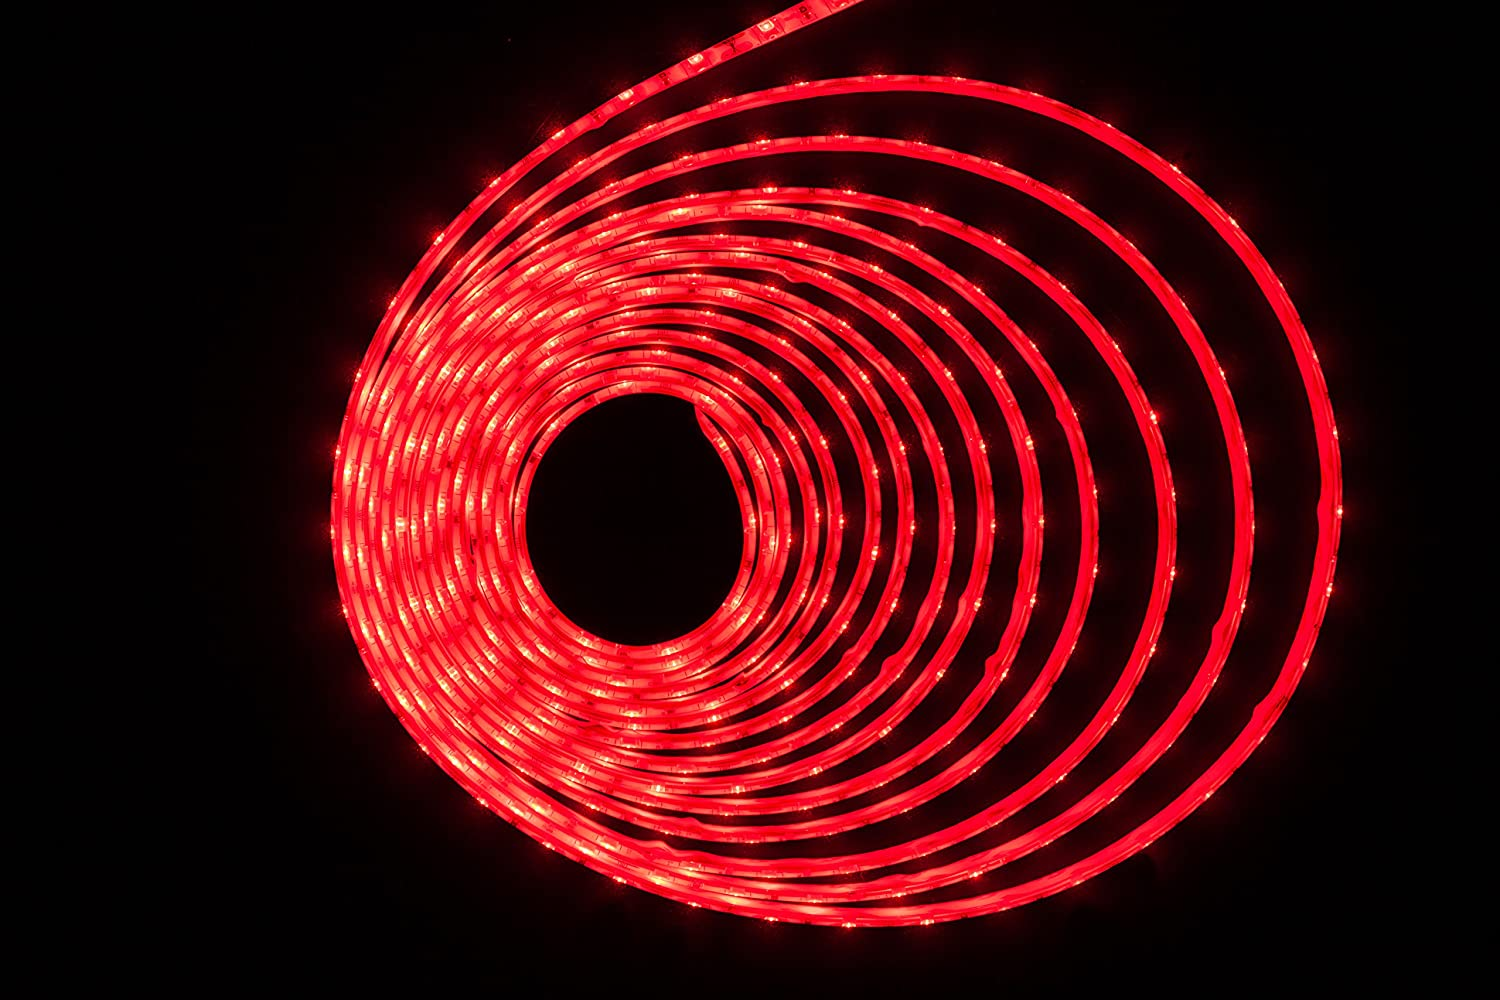 Hkbayi Super Bright 5m 5730 Smd Led Strip Flexible Light 12v Battery Level Indicator Circuit Bar Graph Circuits Waterproof 60led M Chip Than 5630 Red Home Kitchen